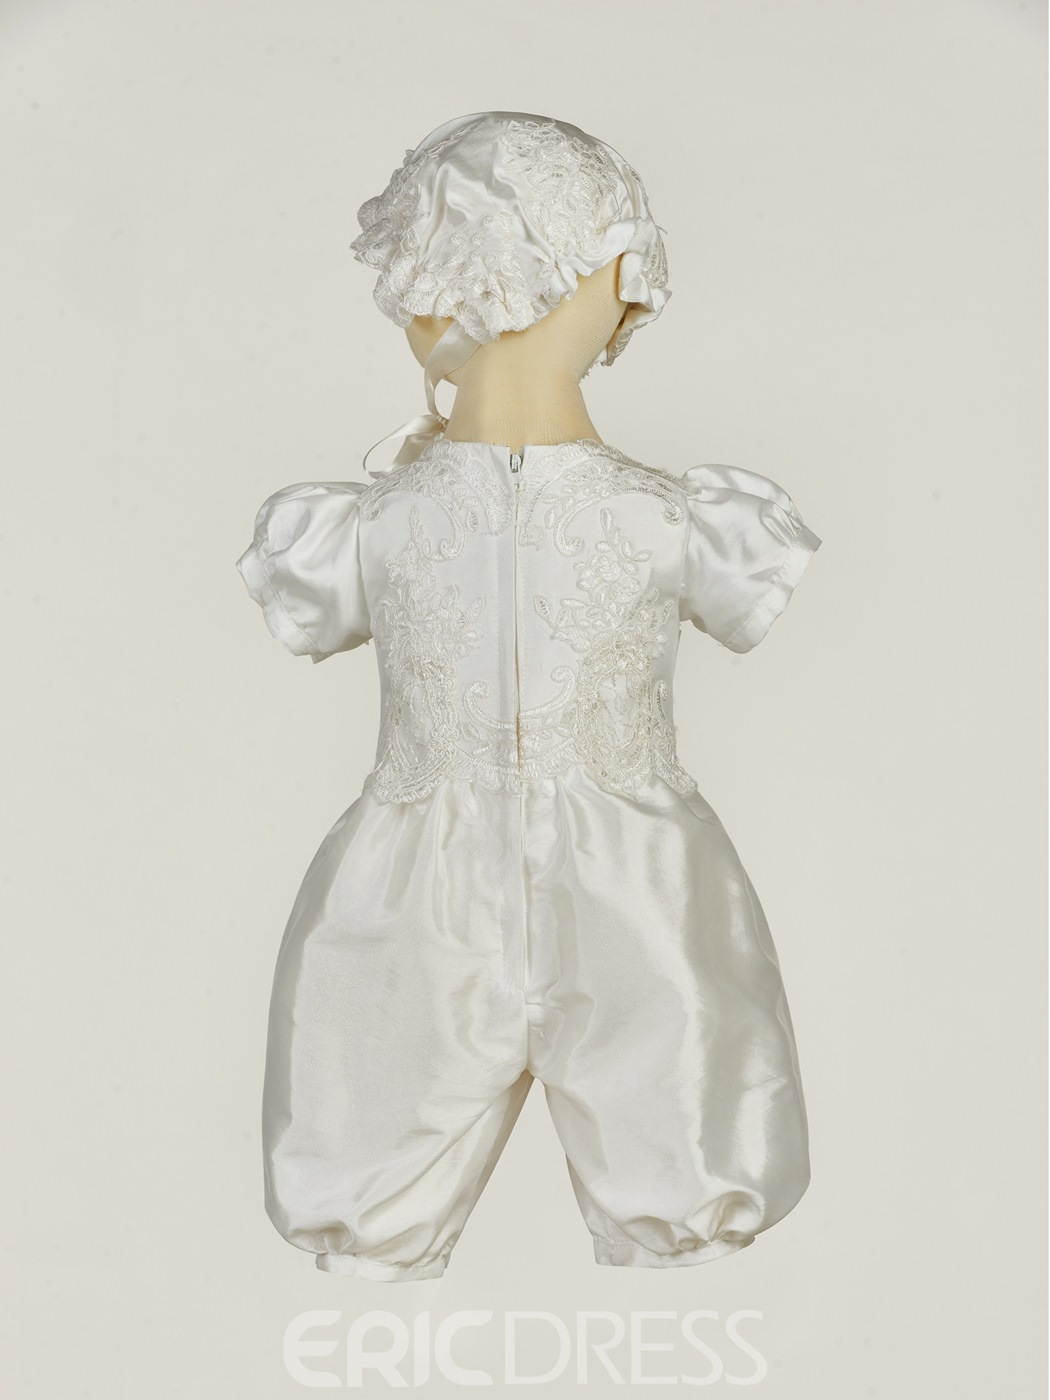 Ericdress 4 Pieces Romper Christening Gown for Girls Baptism Bonnet